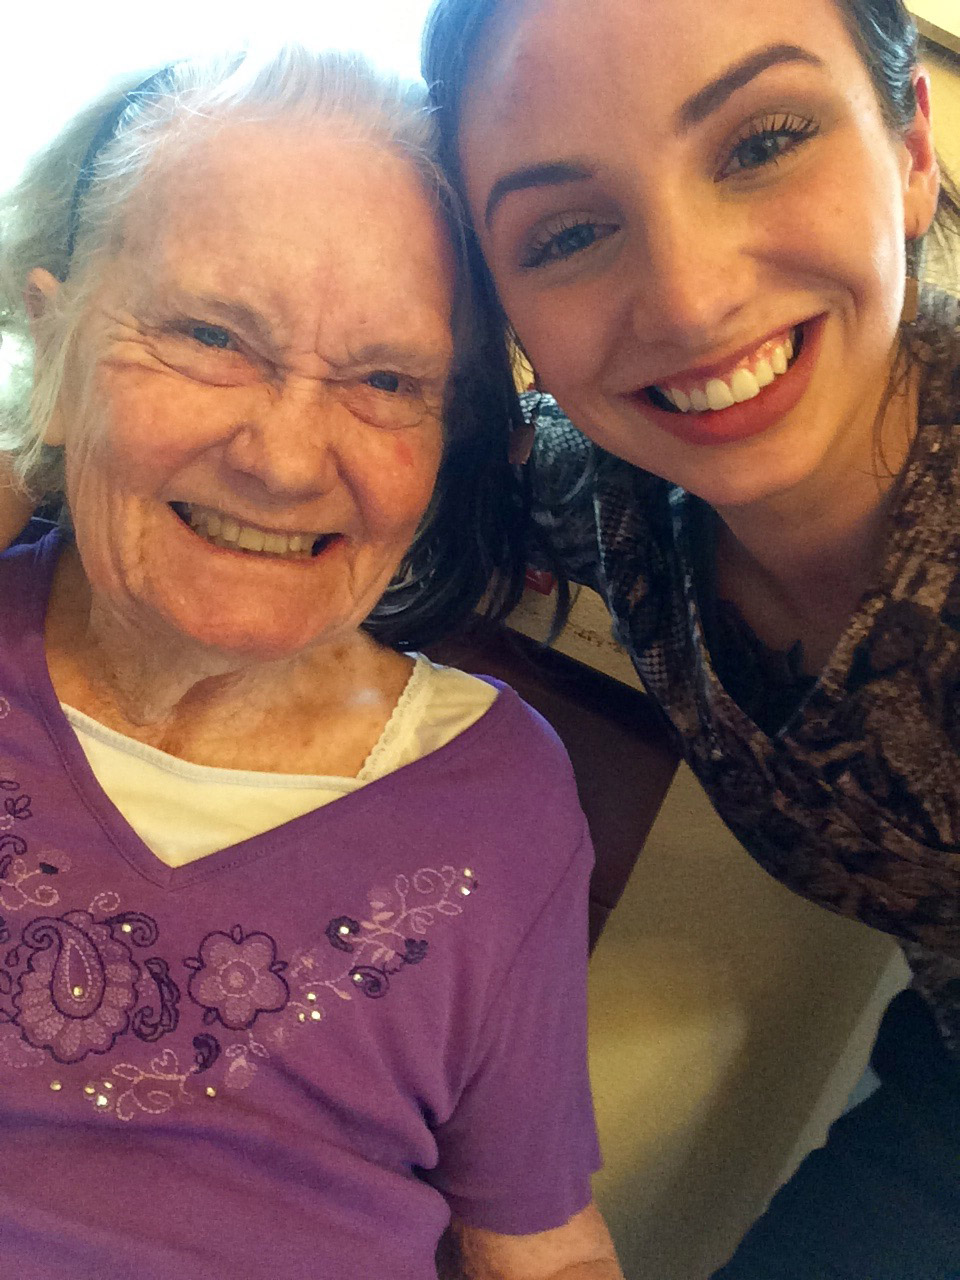 gabby and resident at riva ridge assisted living center